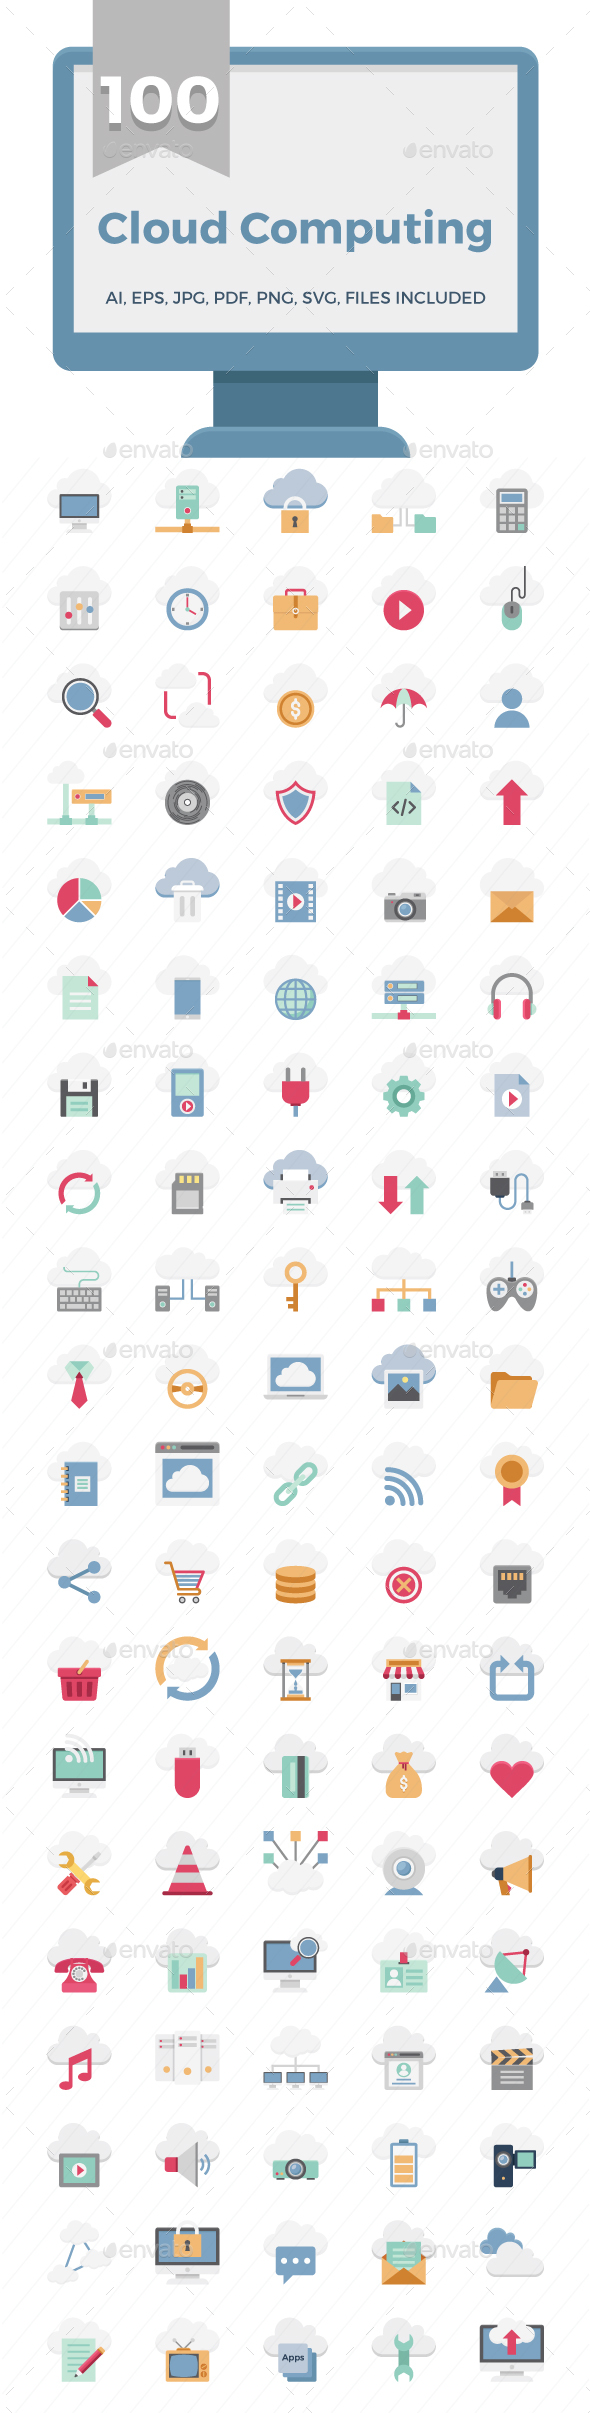 100 Cloud Computing Technology Color Vector Icons Set - Icons